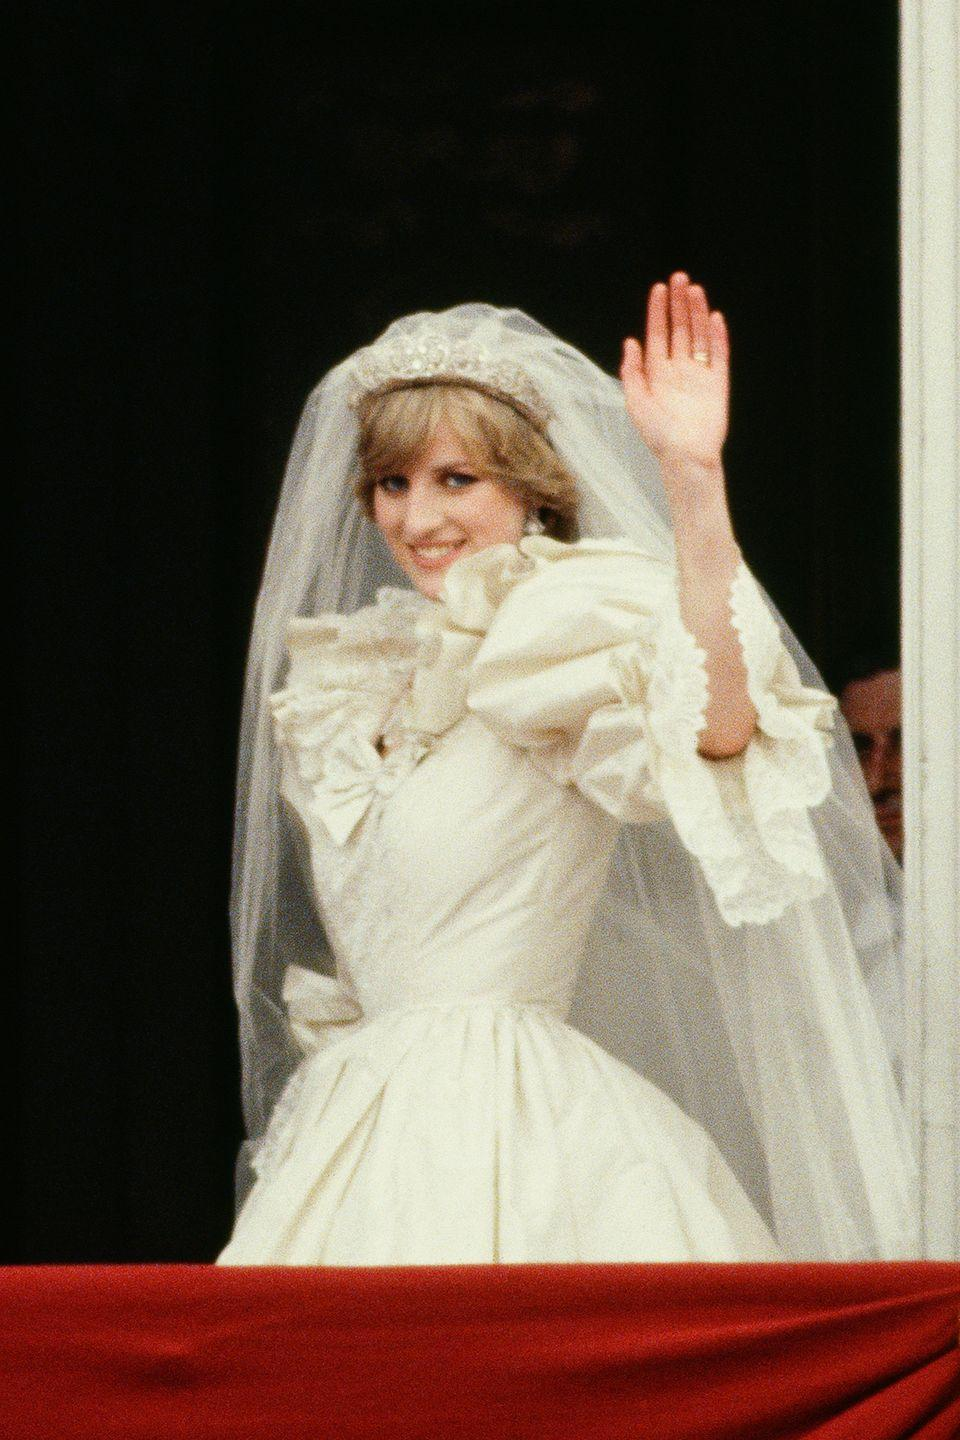 "<p>A special square of Carrickmacross lace either came from a <a href=""http://www.eonline.com/news/859994/the-epic-story-of-princess-diana-s-wedding-dress-3-months-25-feet-of-train-a-20-year-old-bride-and-a-fashion-legacy-for-the-ages"" rel=""nofollow noopener"" target=""_blank"" data-ylk=""slk:bag of scraps purchased at auction"" class=""link rapid-noclick-resp"">bag of scraps purchased at auction</a> or a <a href=""http://www.dailymail.co.uk/femail/article-4801020/Diana-dress-century.html"" rel=""nofollow noopener"" target=""_blank"" data-ylk=""slk:donation from the Royal School of Needlework"" class=""link rapid-noclick-resp"">donation from the Royal School of Needlework</a>, depending on who you ask. </p>"